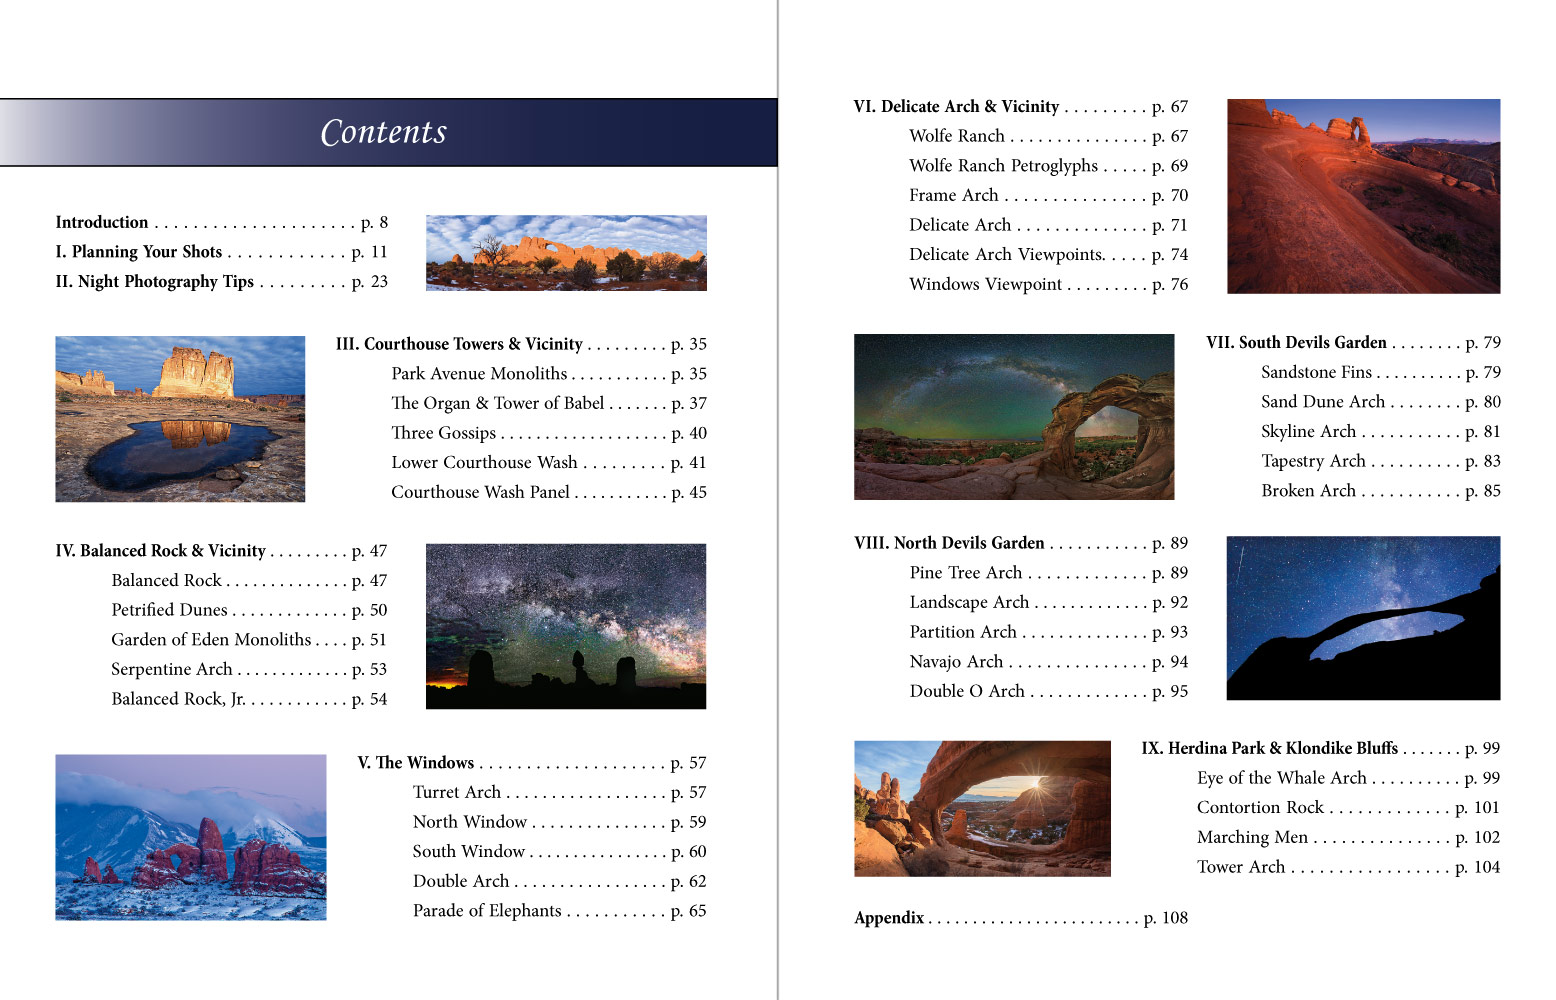 Table of Contents - Photographing Arches National Park